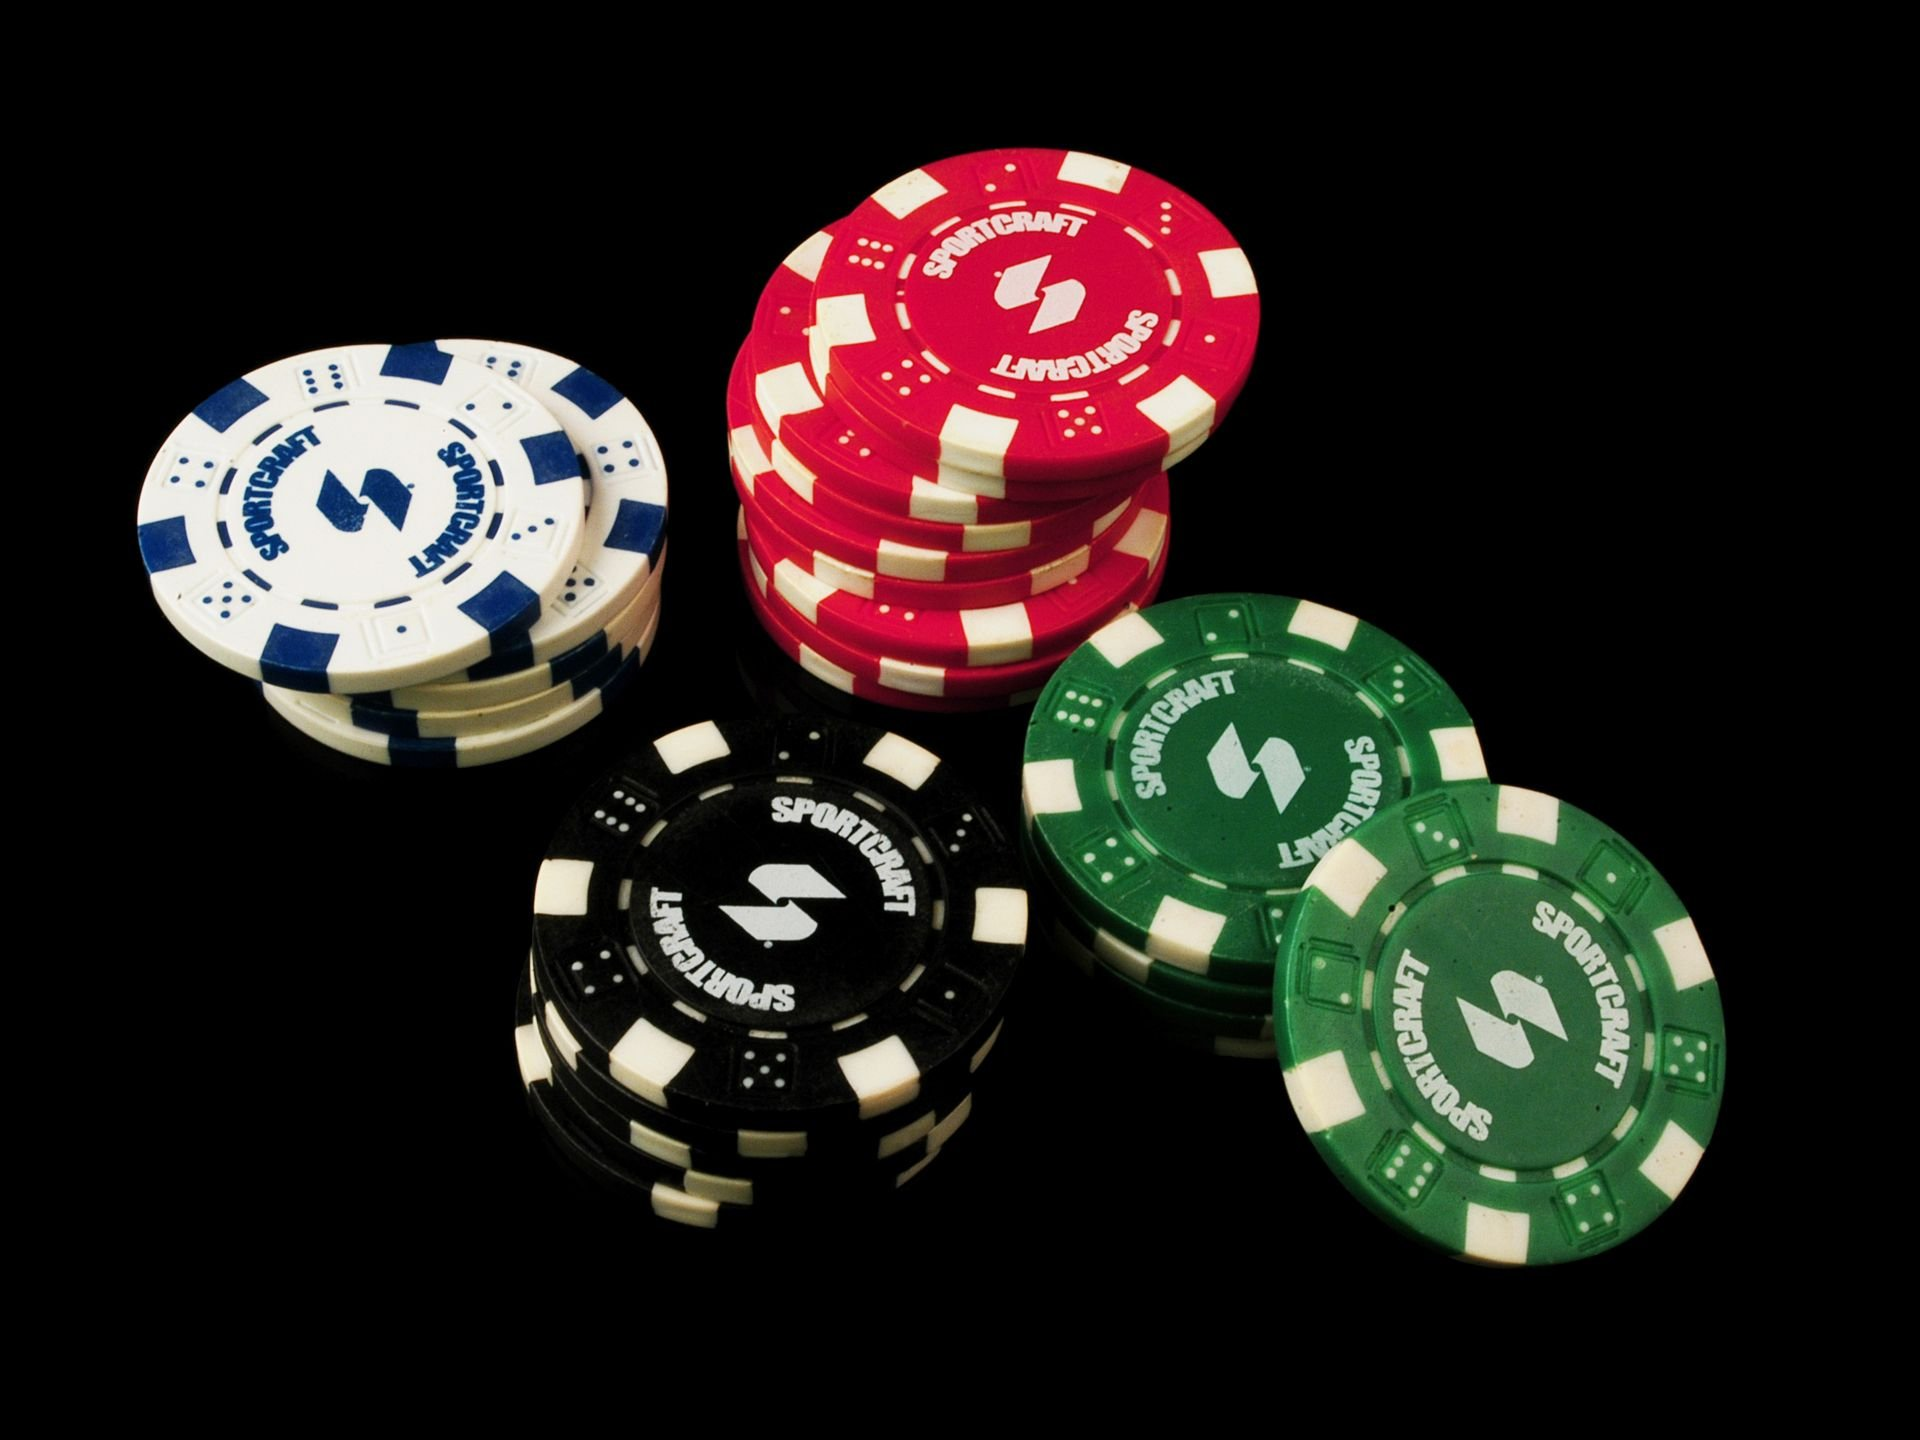 Miscellaneous Sportcraft Poker Chips picture nr 58941 1920x1440